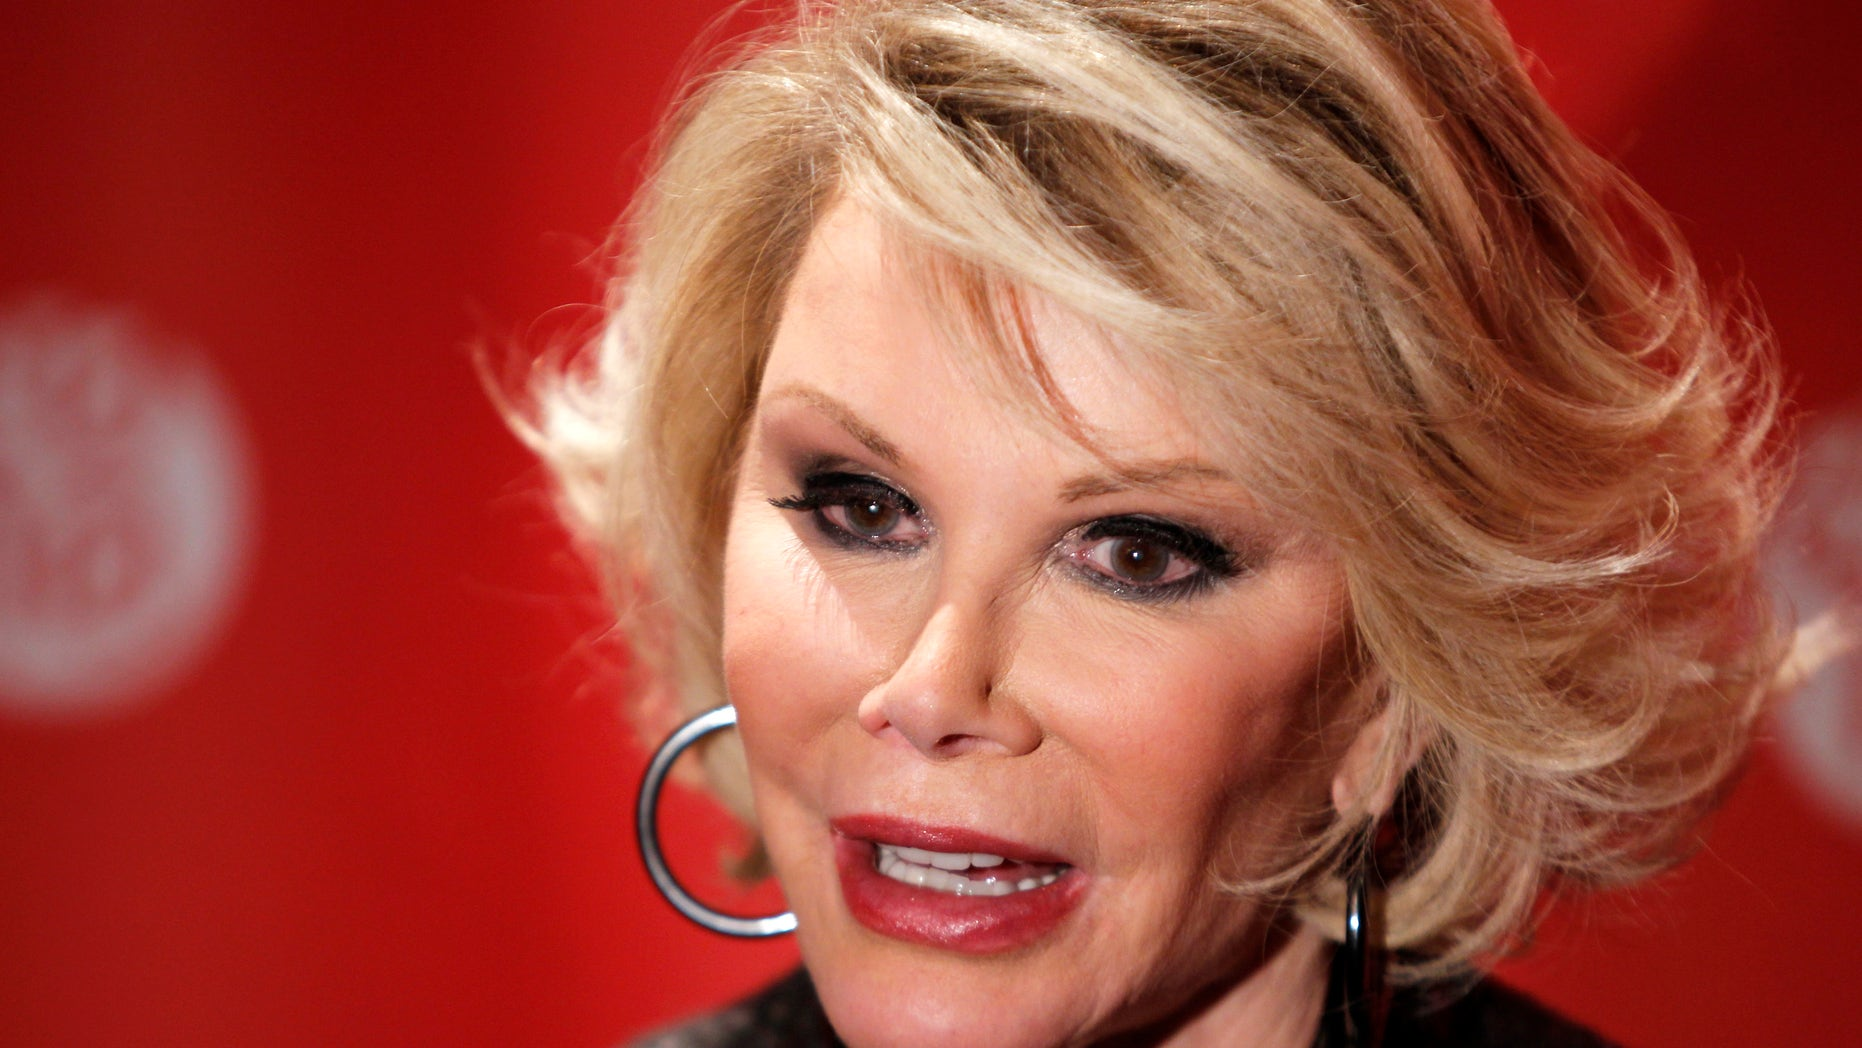 """January 25, 2010. Comedian Joan Rivers arrives for the premiere of the documentary """"Joan Rivers - A Piece Of Work"""" during the 2010 Sundance Film Festival in Park City, Utah."""